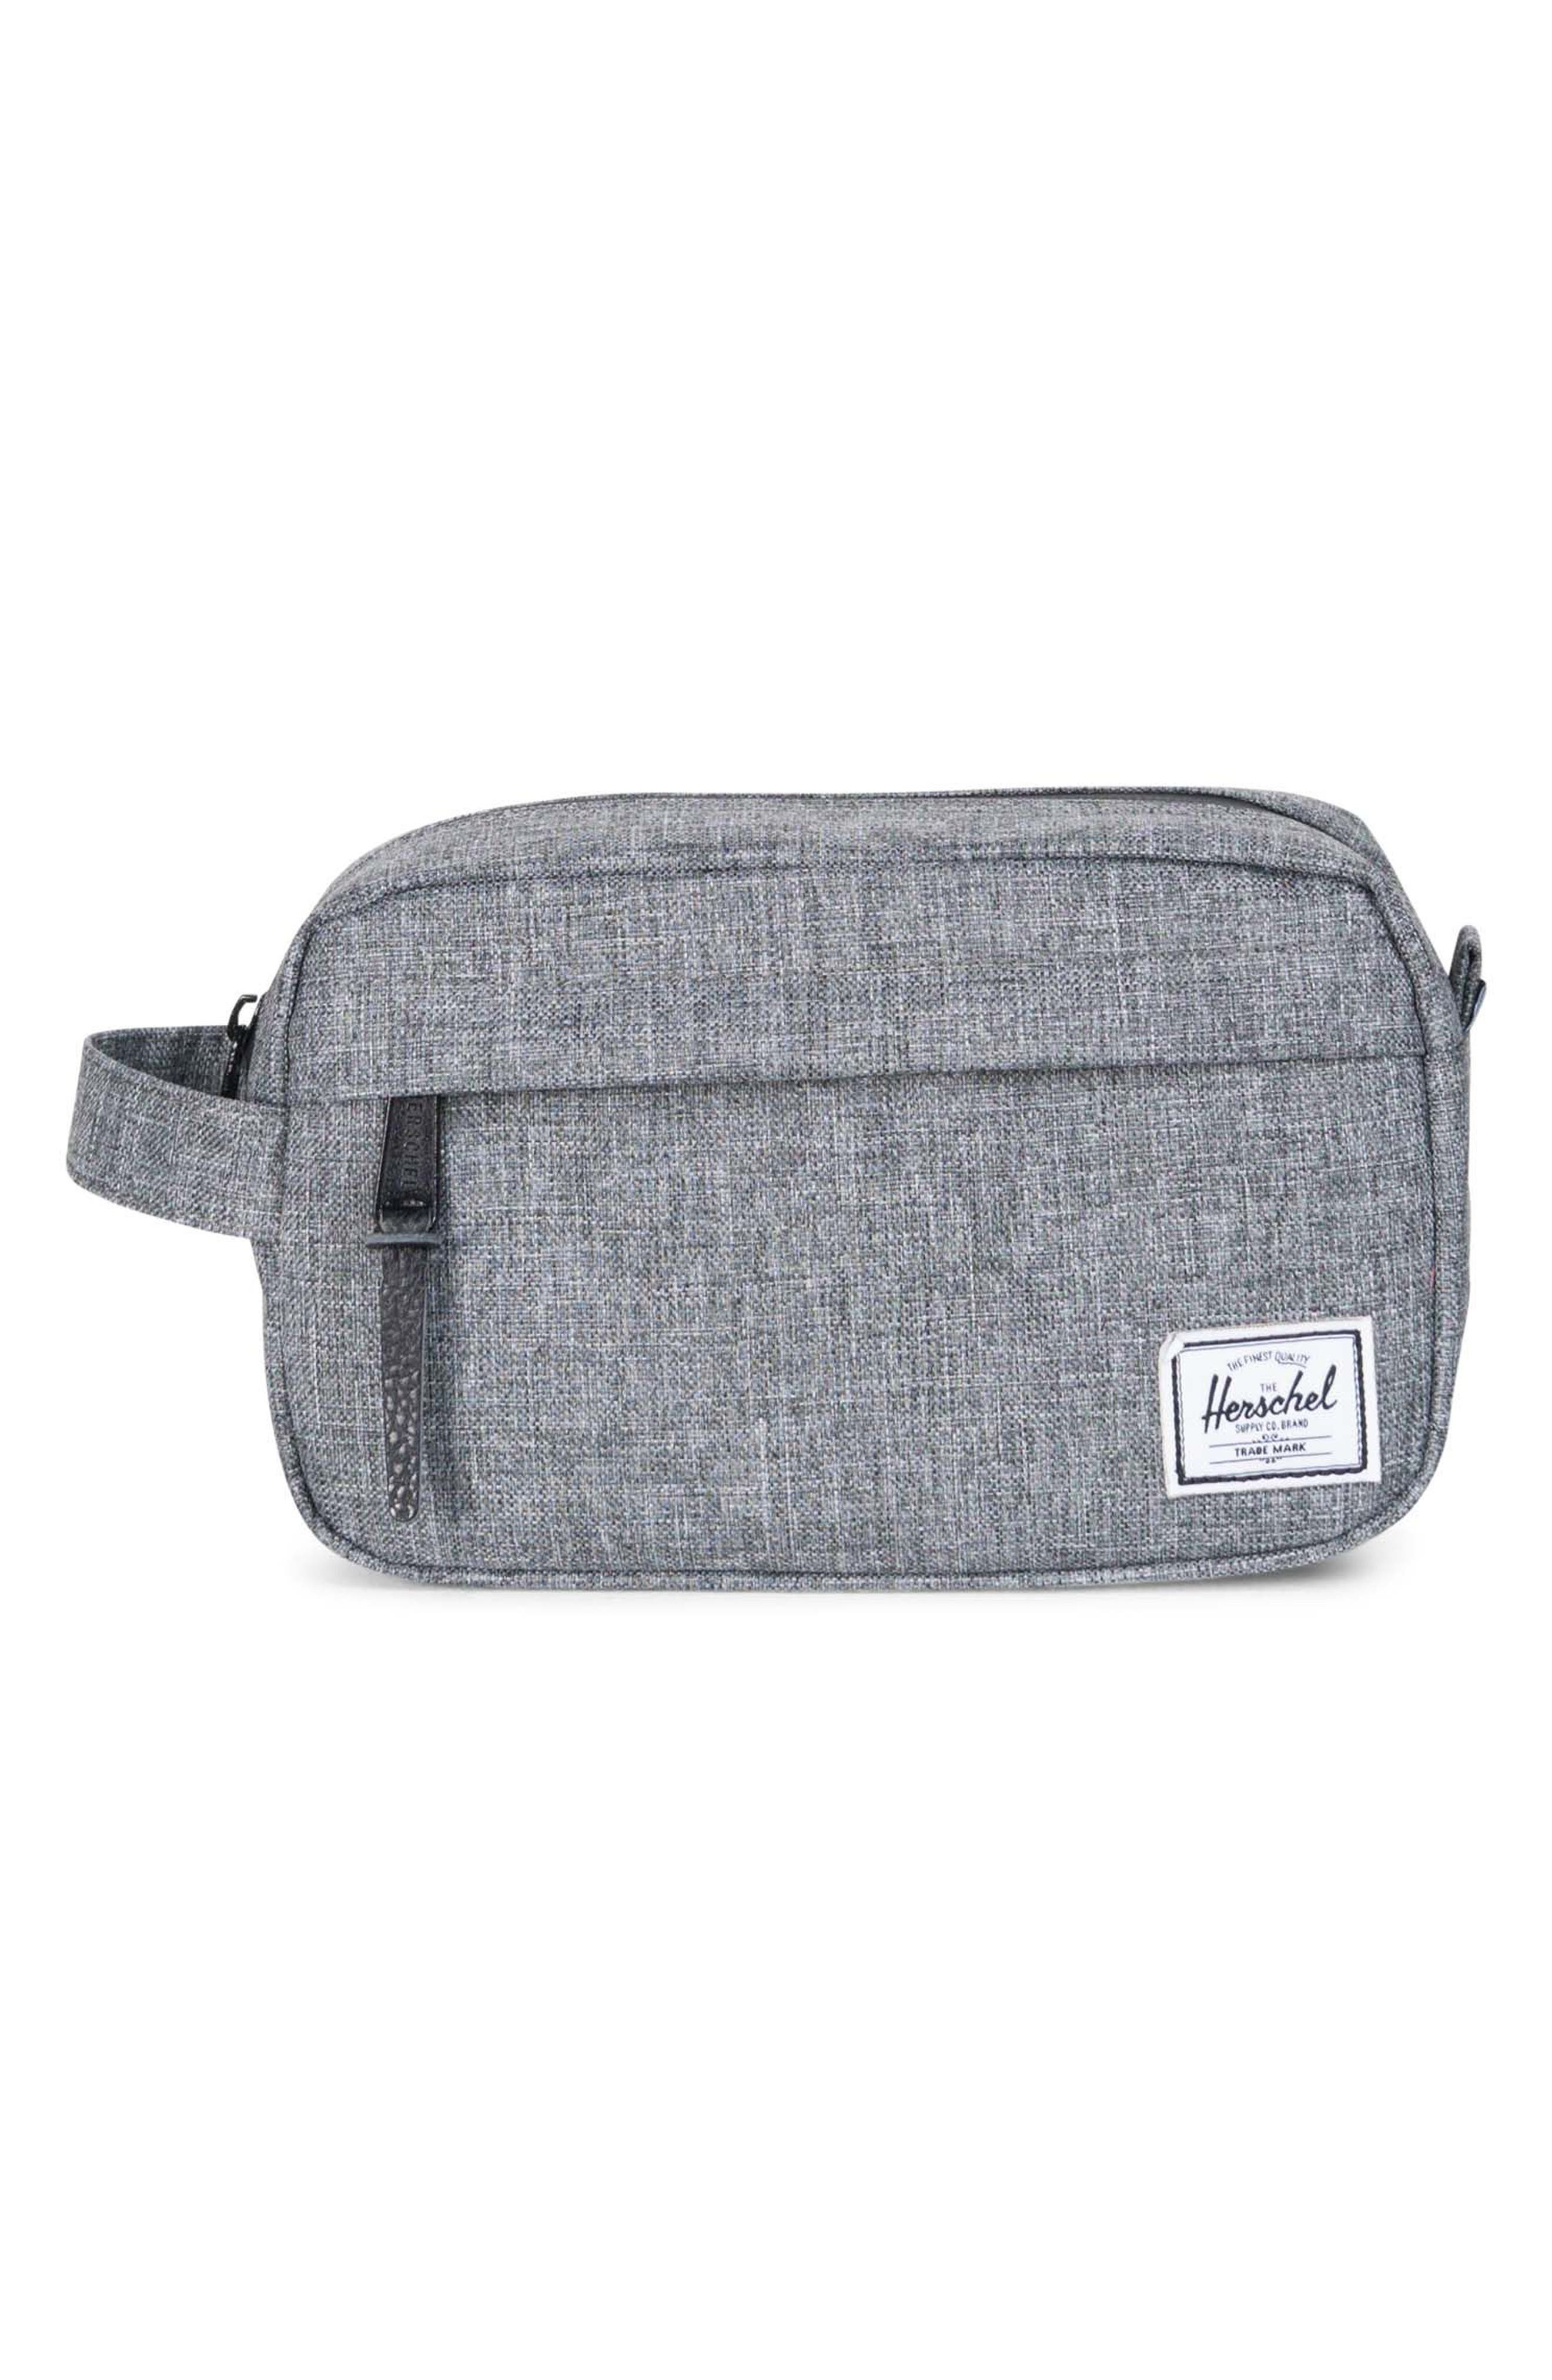 Alternate Image 1 Selected - Herschel Supply Co. Chapter Carry-On Travel Kit